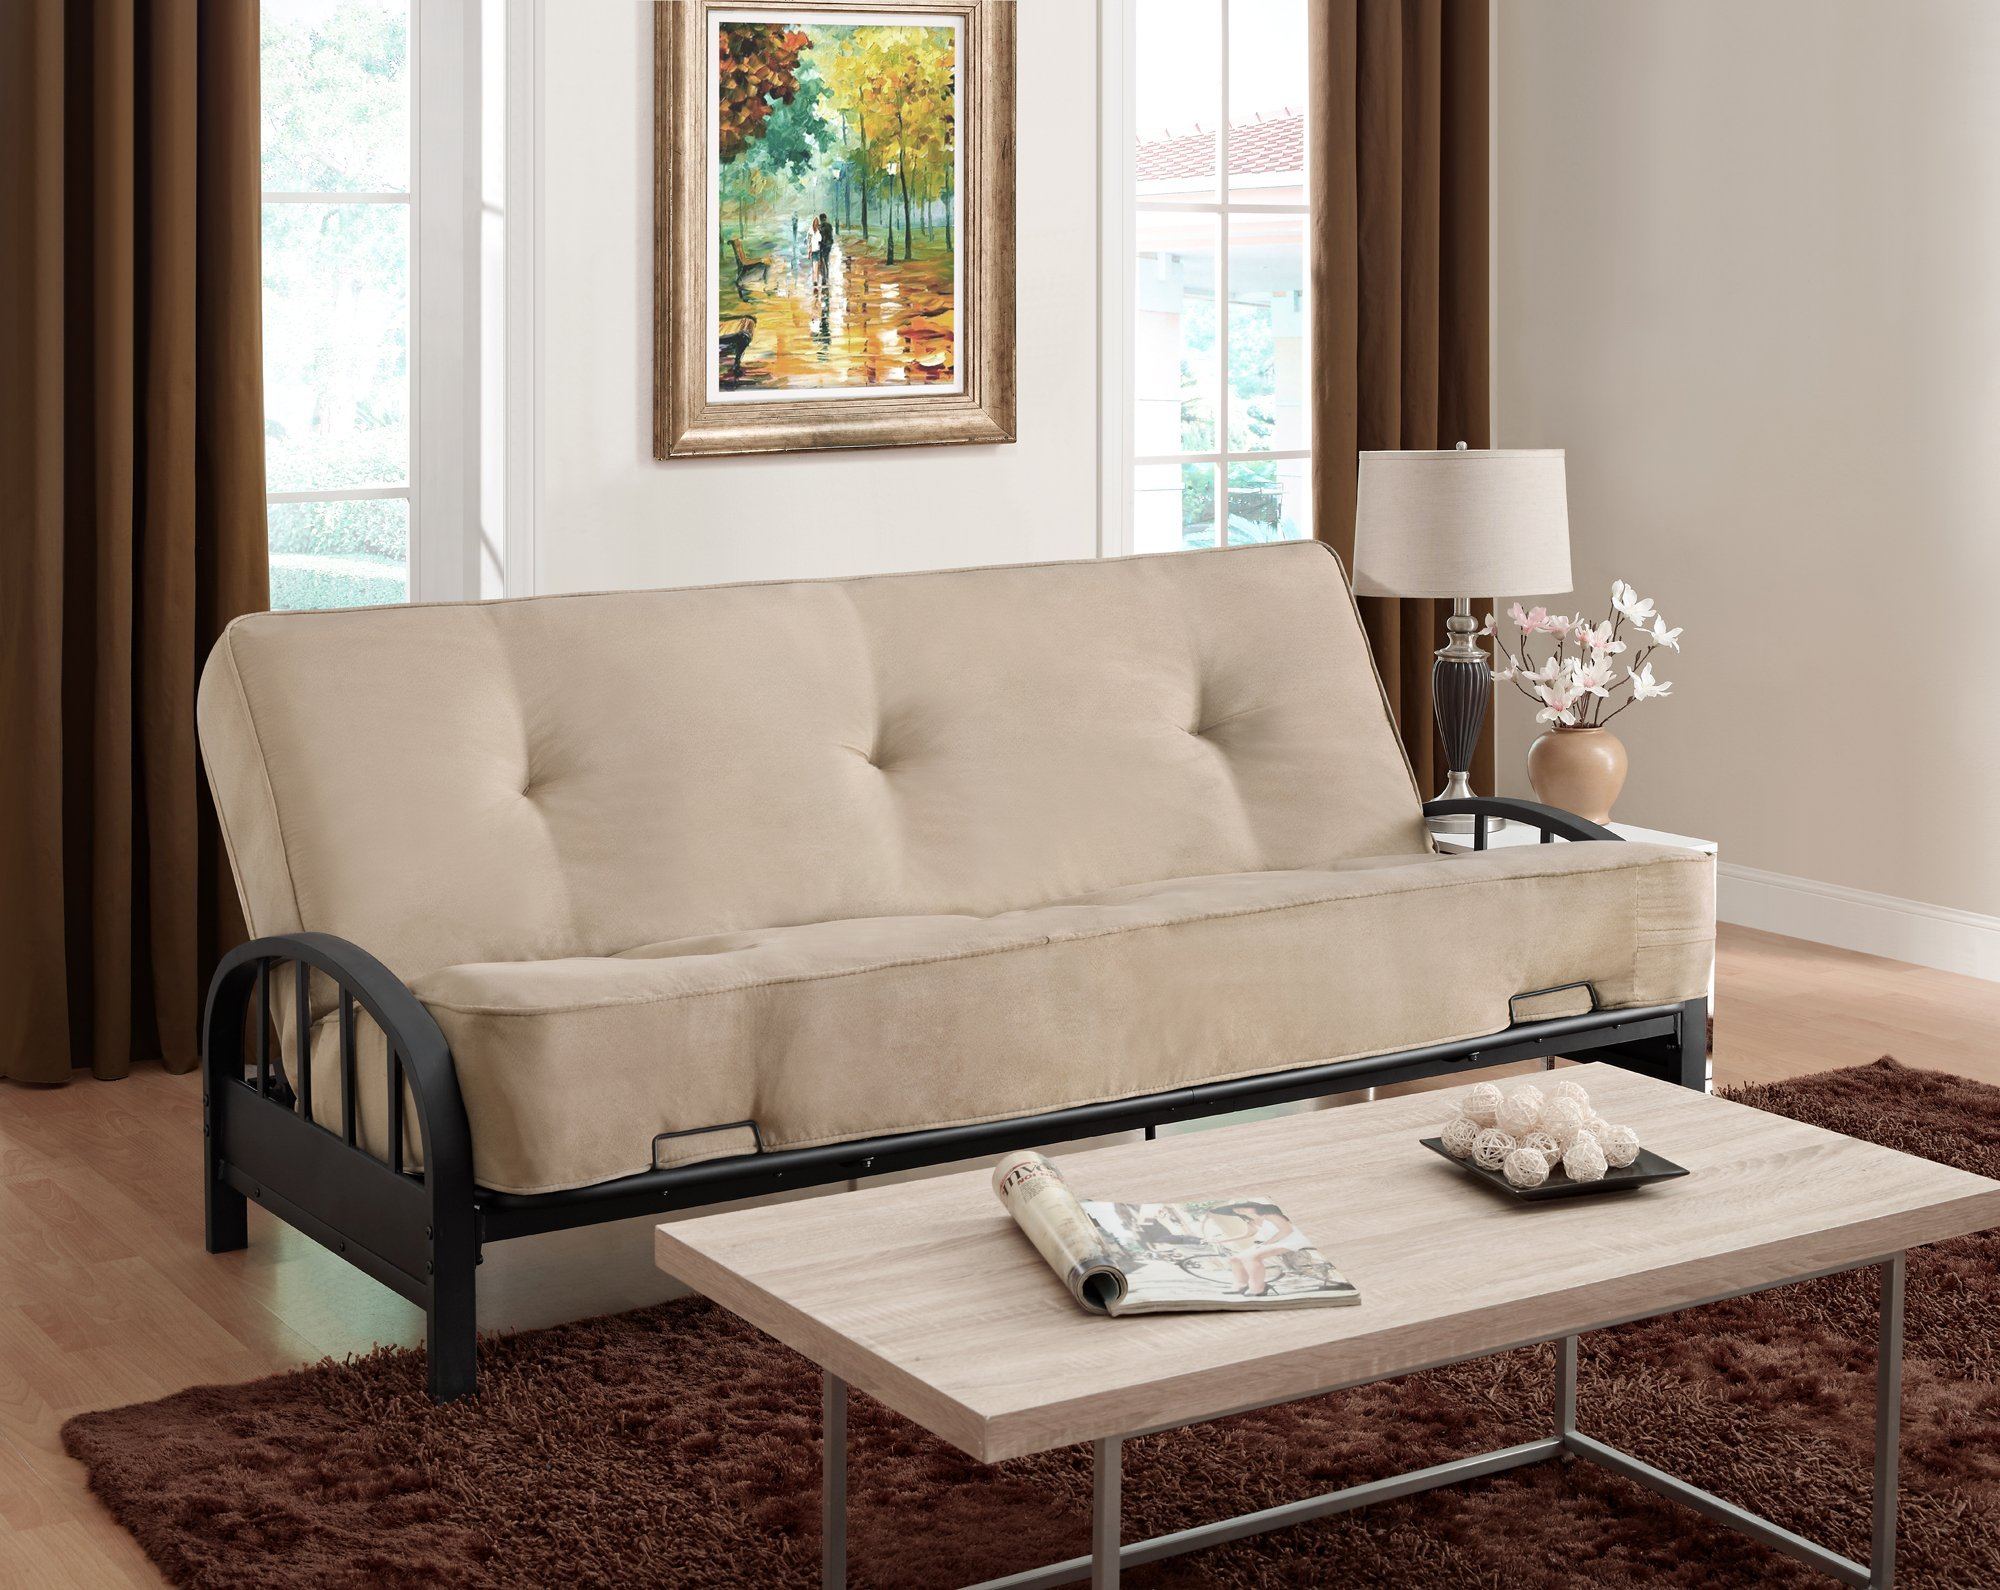 DHP Aiden Futon Metal Frame, Converts Easily to a Full- Size Bed, Black by DHP (Image #2)